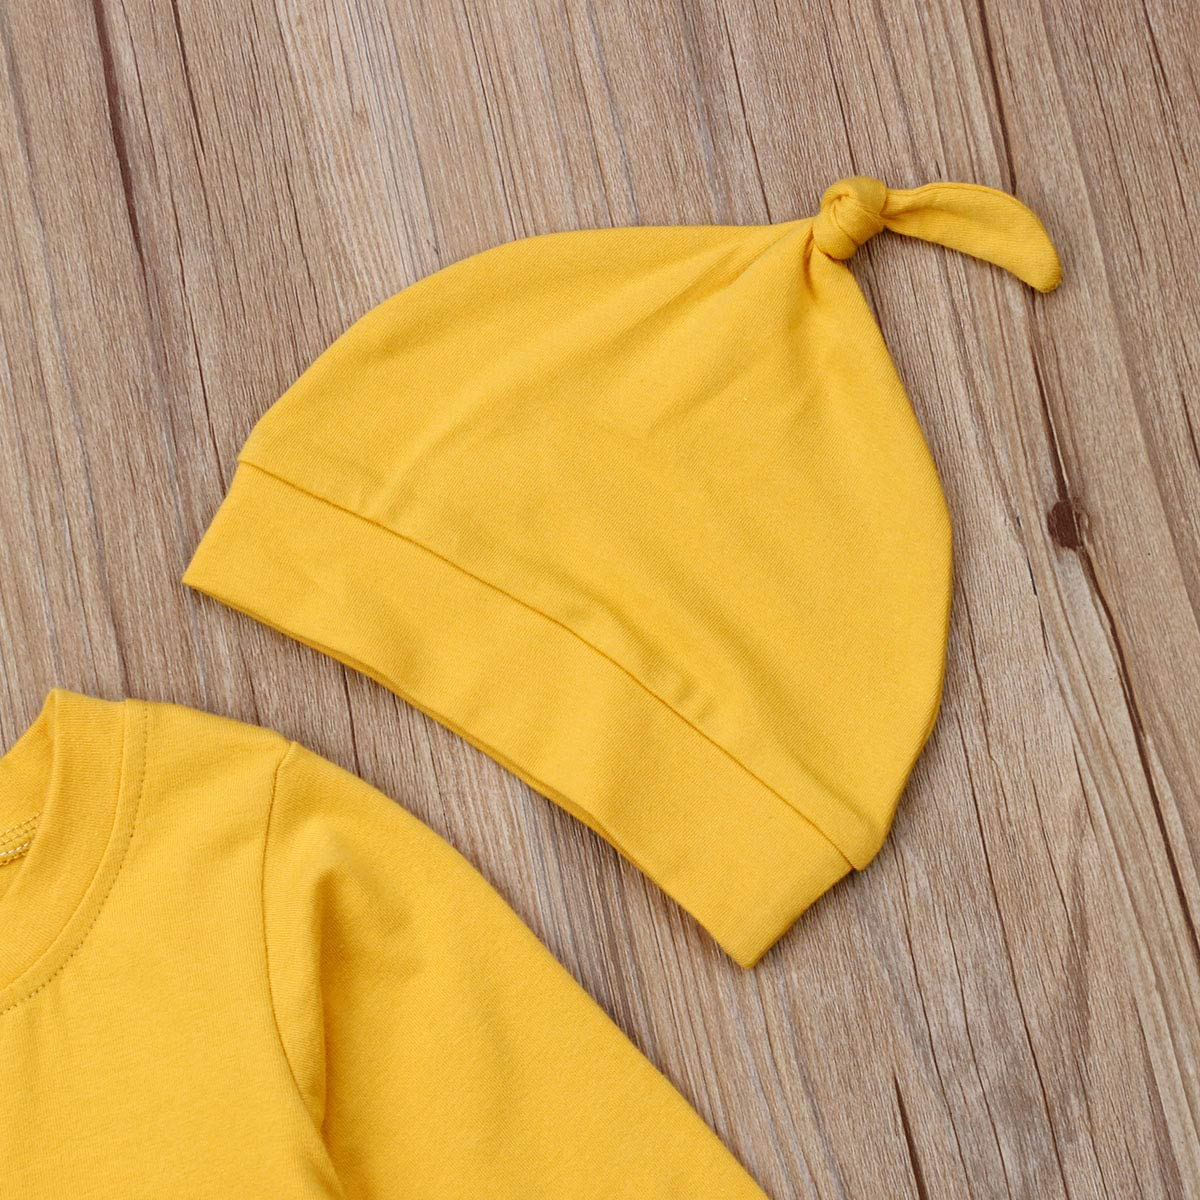 Newborn Kids Baby Boys Cute Solid Color Long Sleeve Jumpsuit Romper Top Outfits Clothes